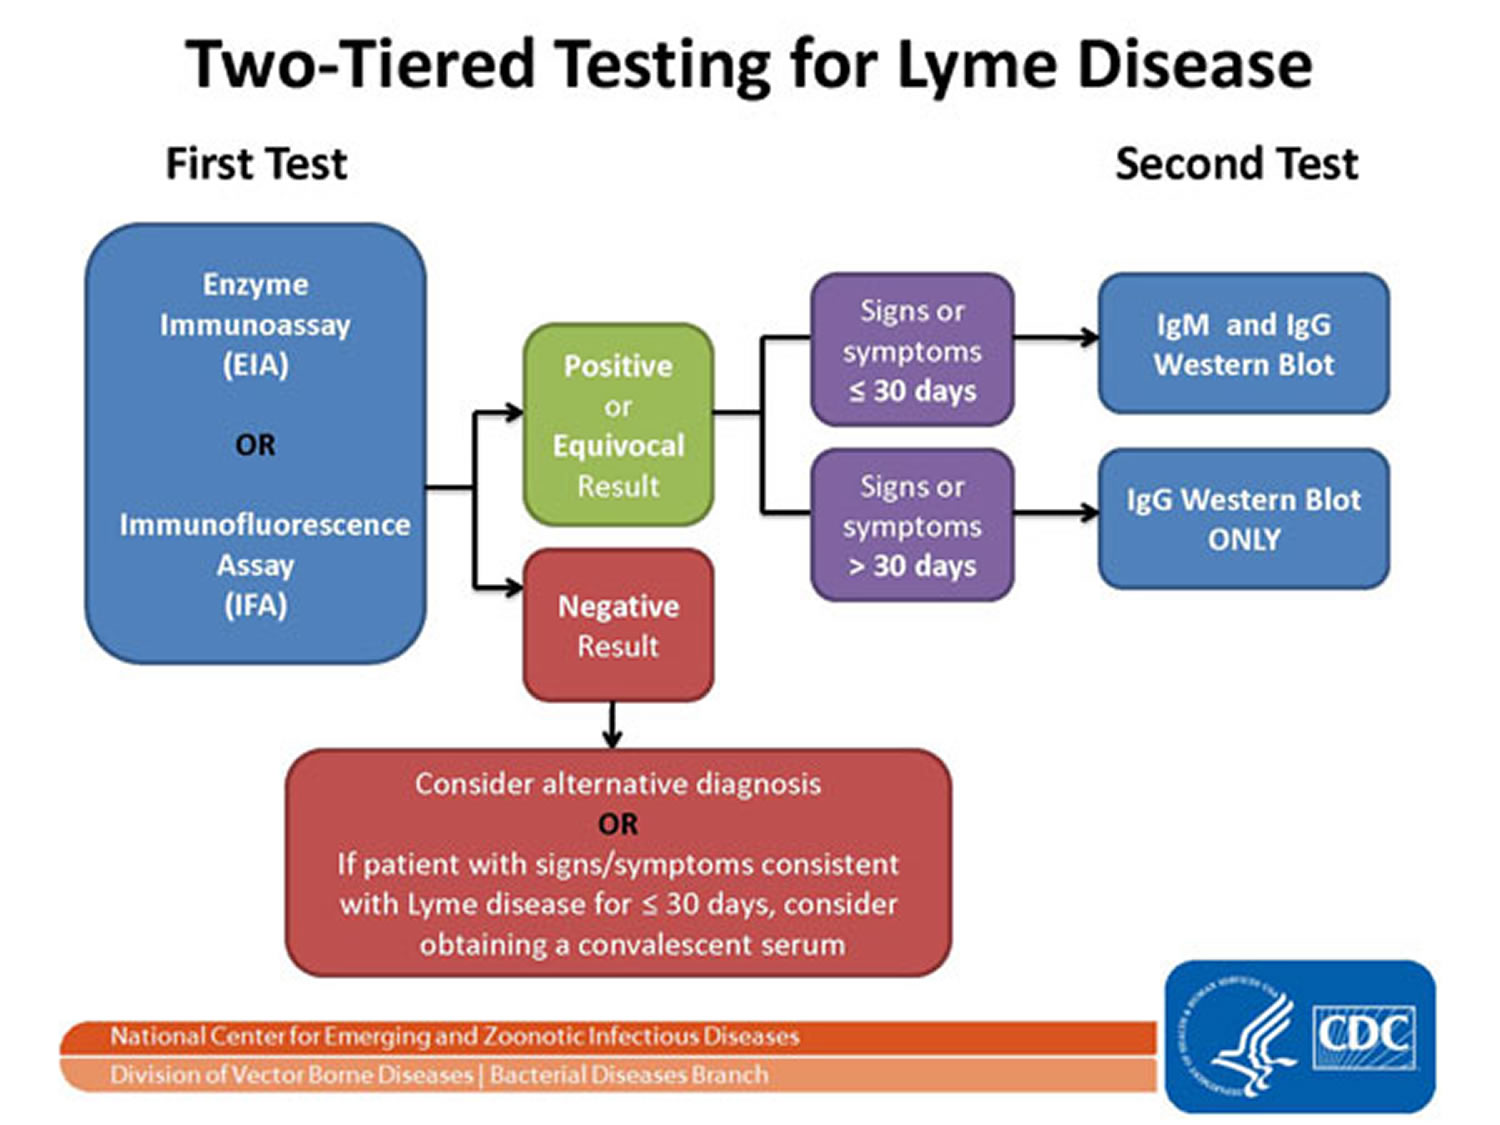 two-tiered testing for lyme disease